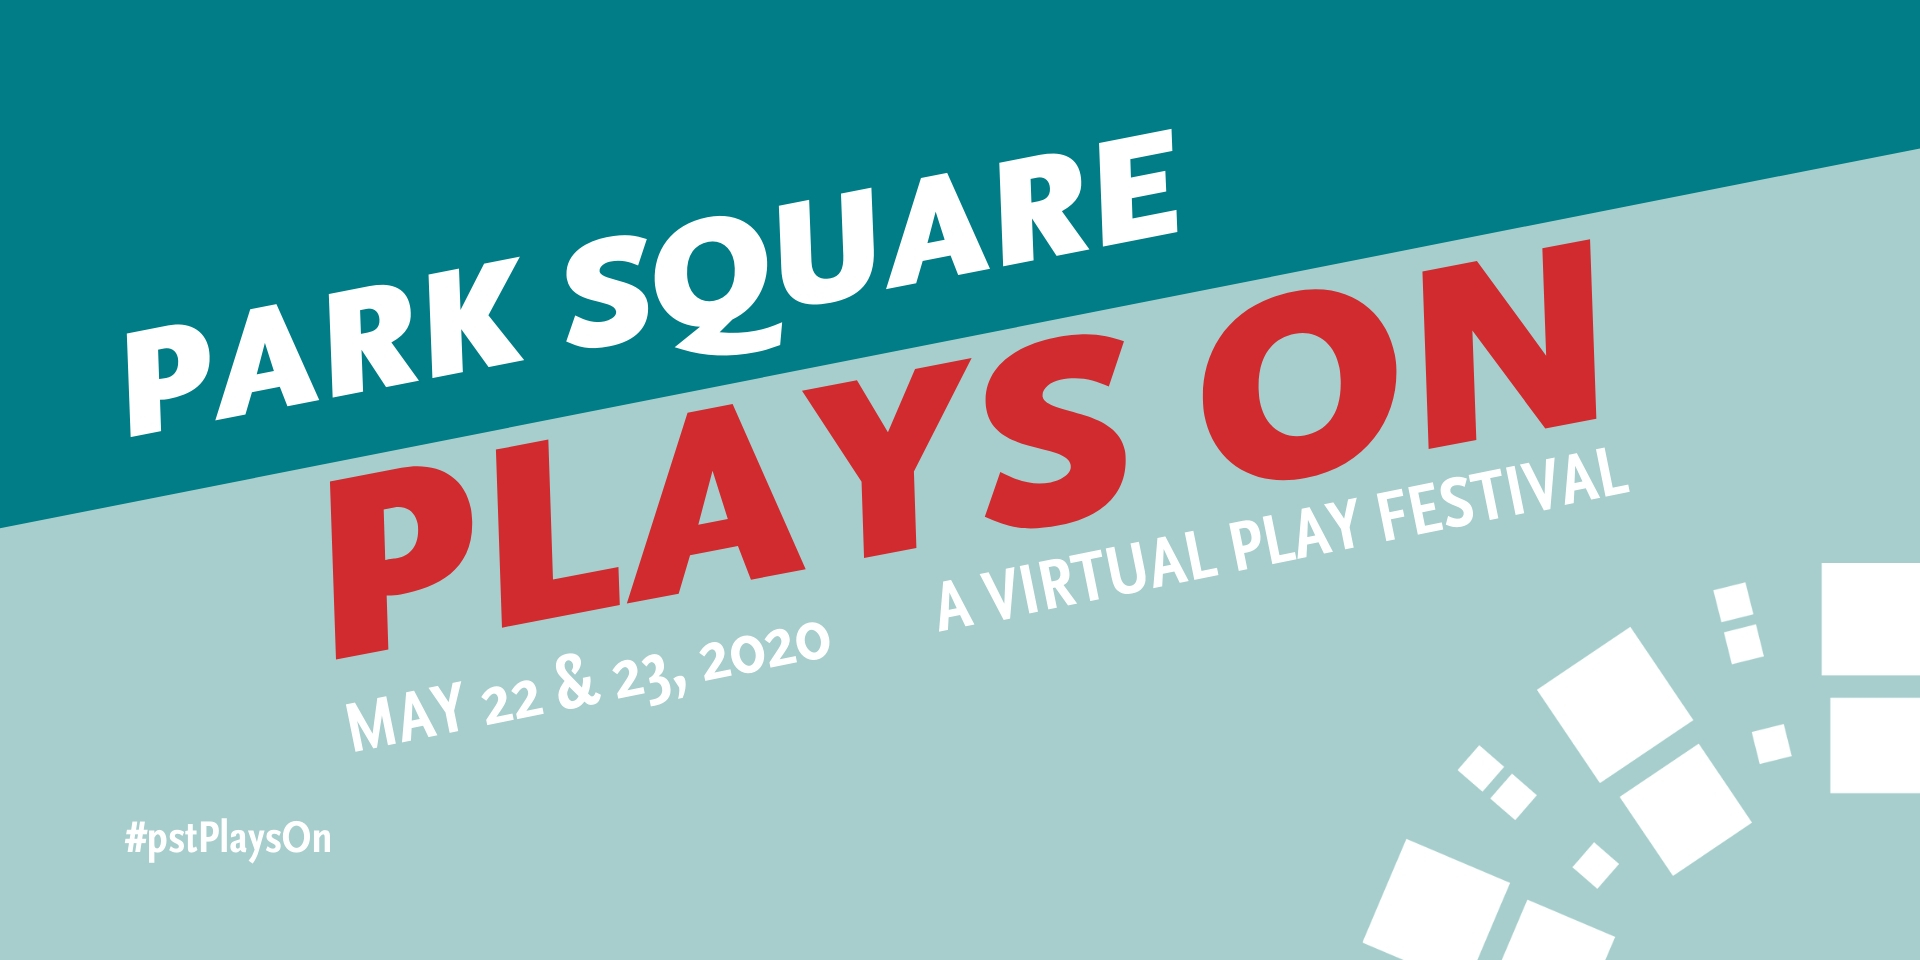 Park Square Plays On: A Virtual Play Festival